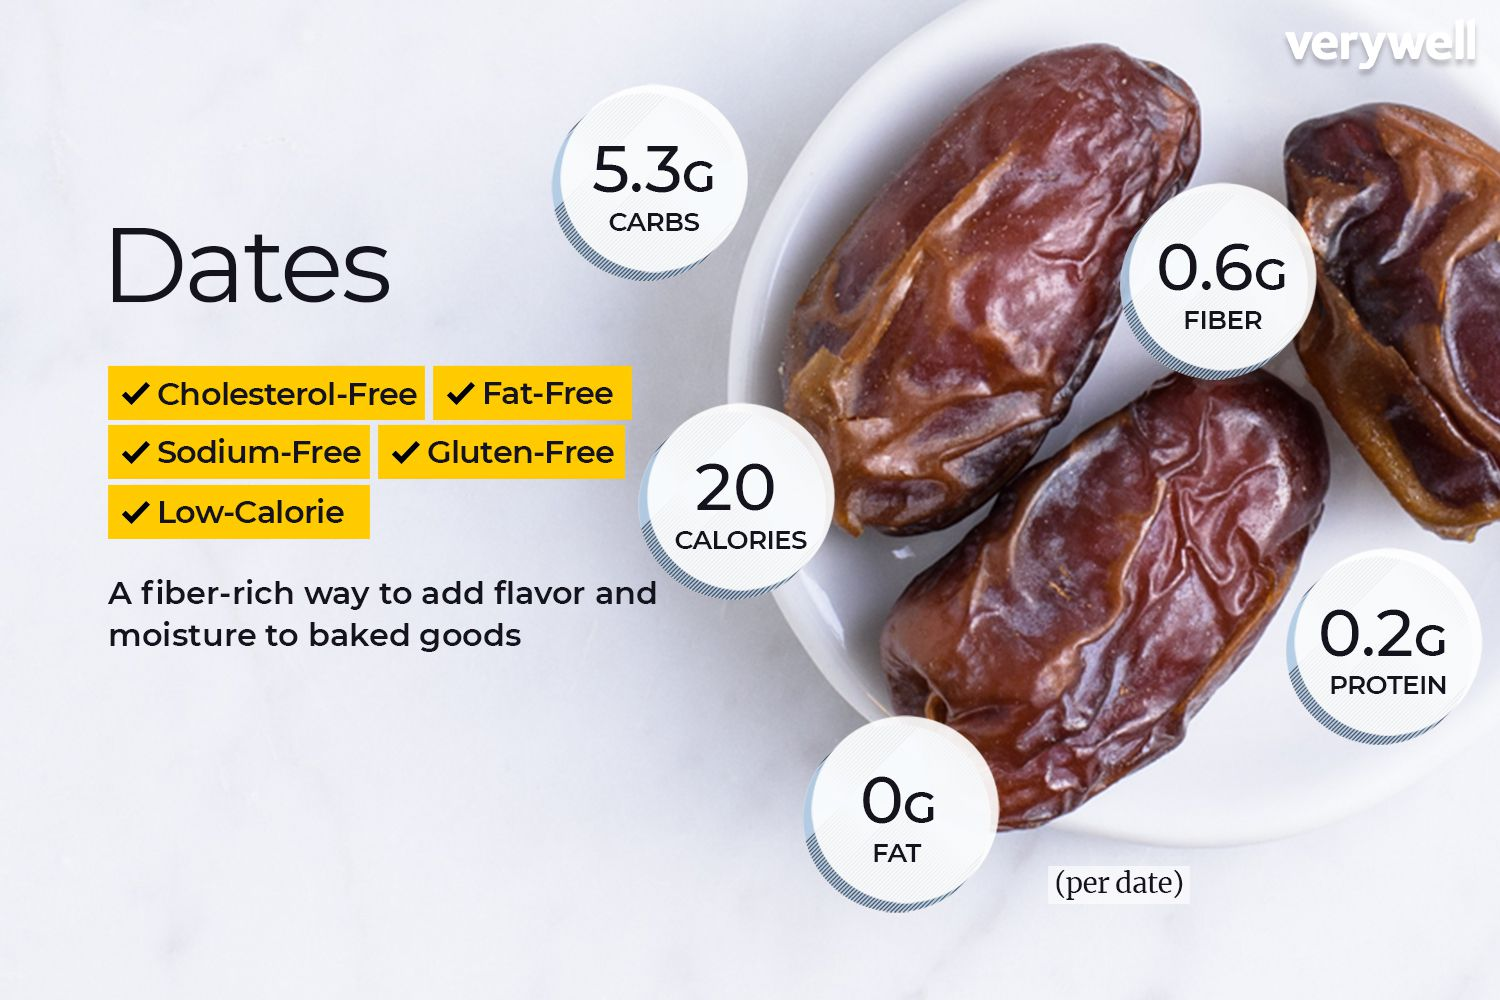 Dates Nutrition Facts and Health Benefits